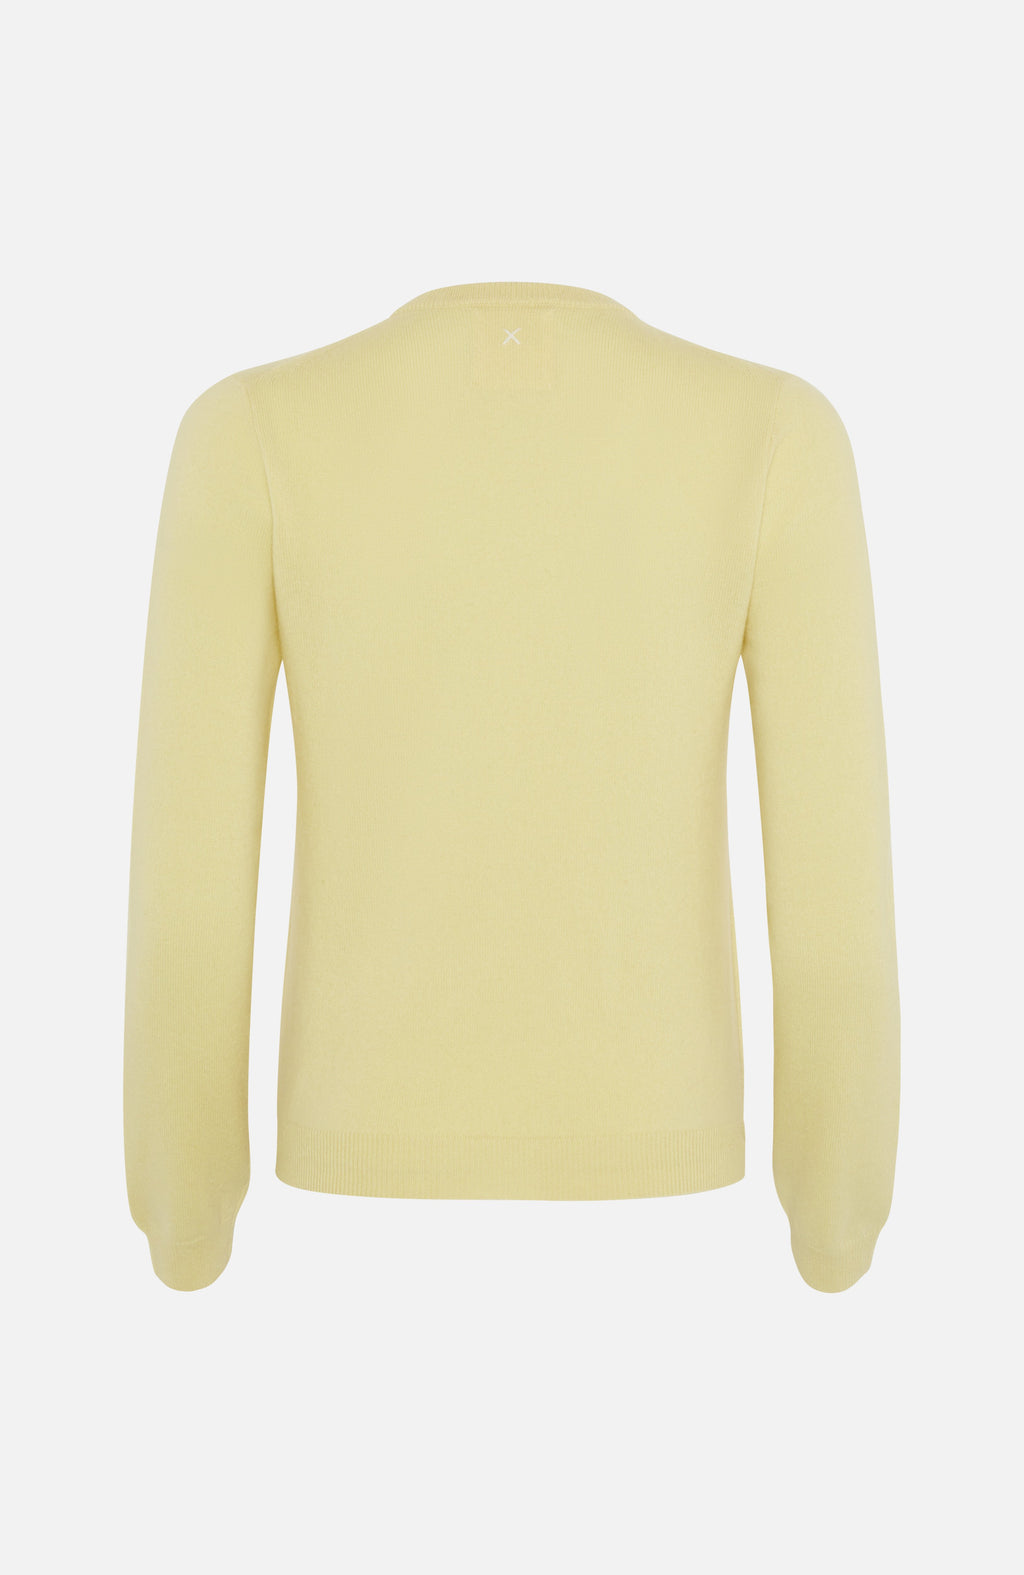 Republic Of Cashmere Round Neck Yellow Sweater